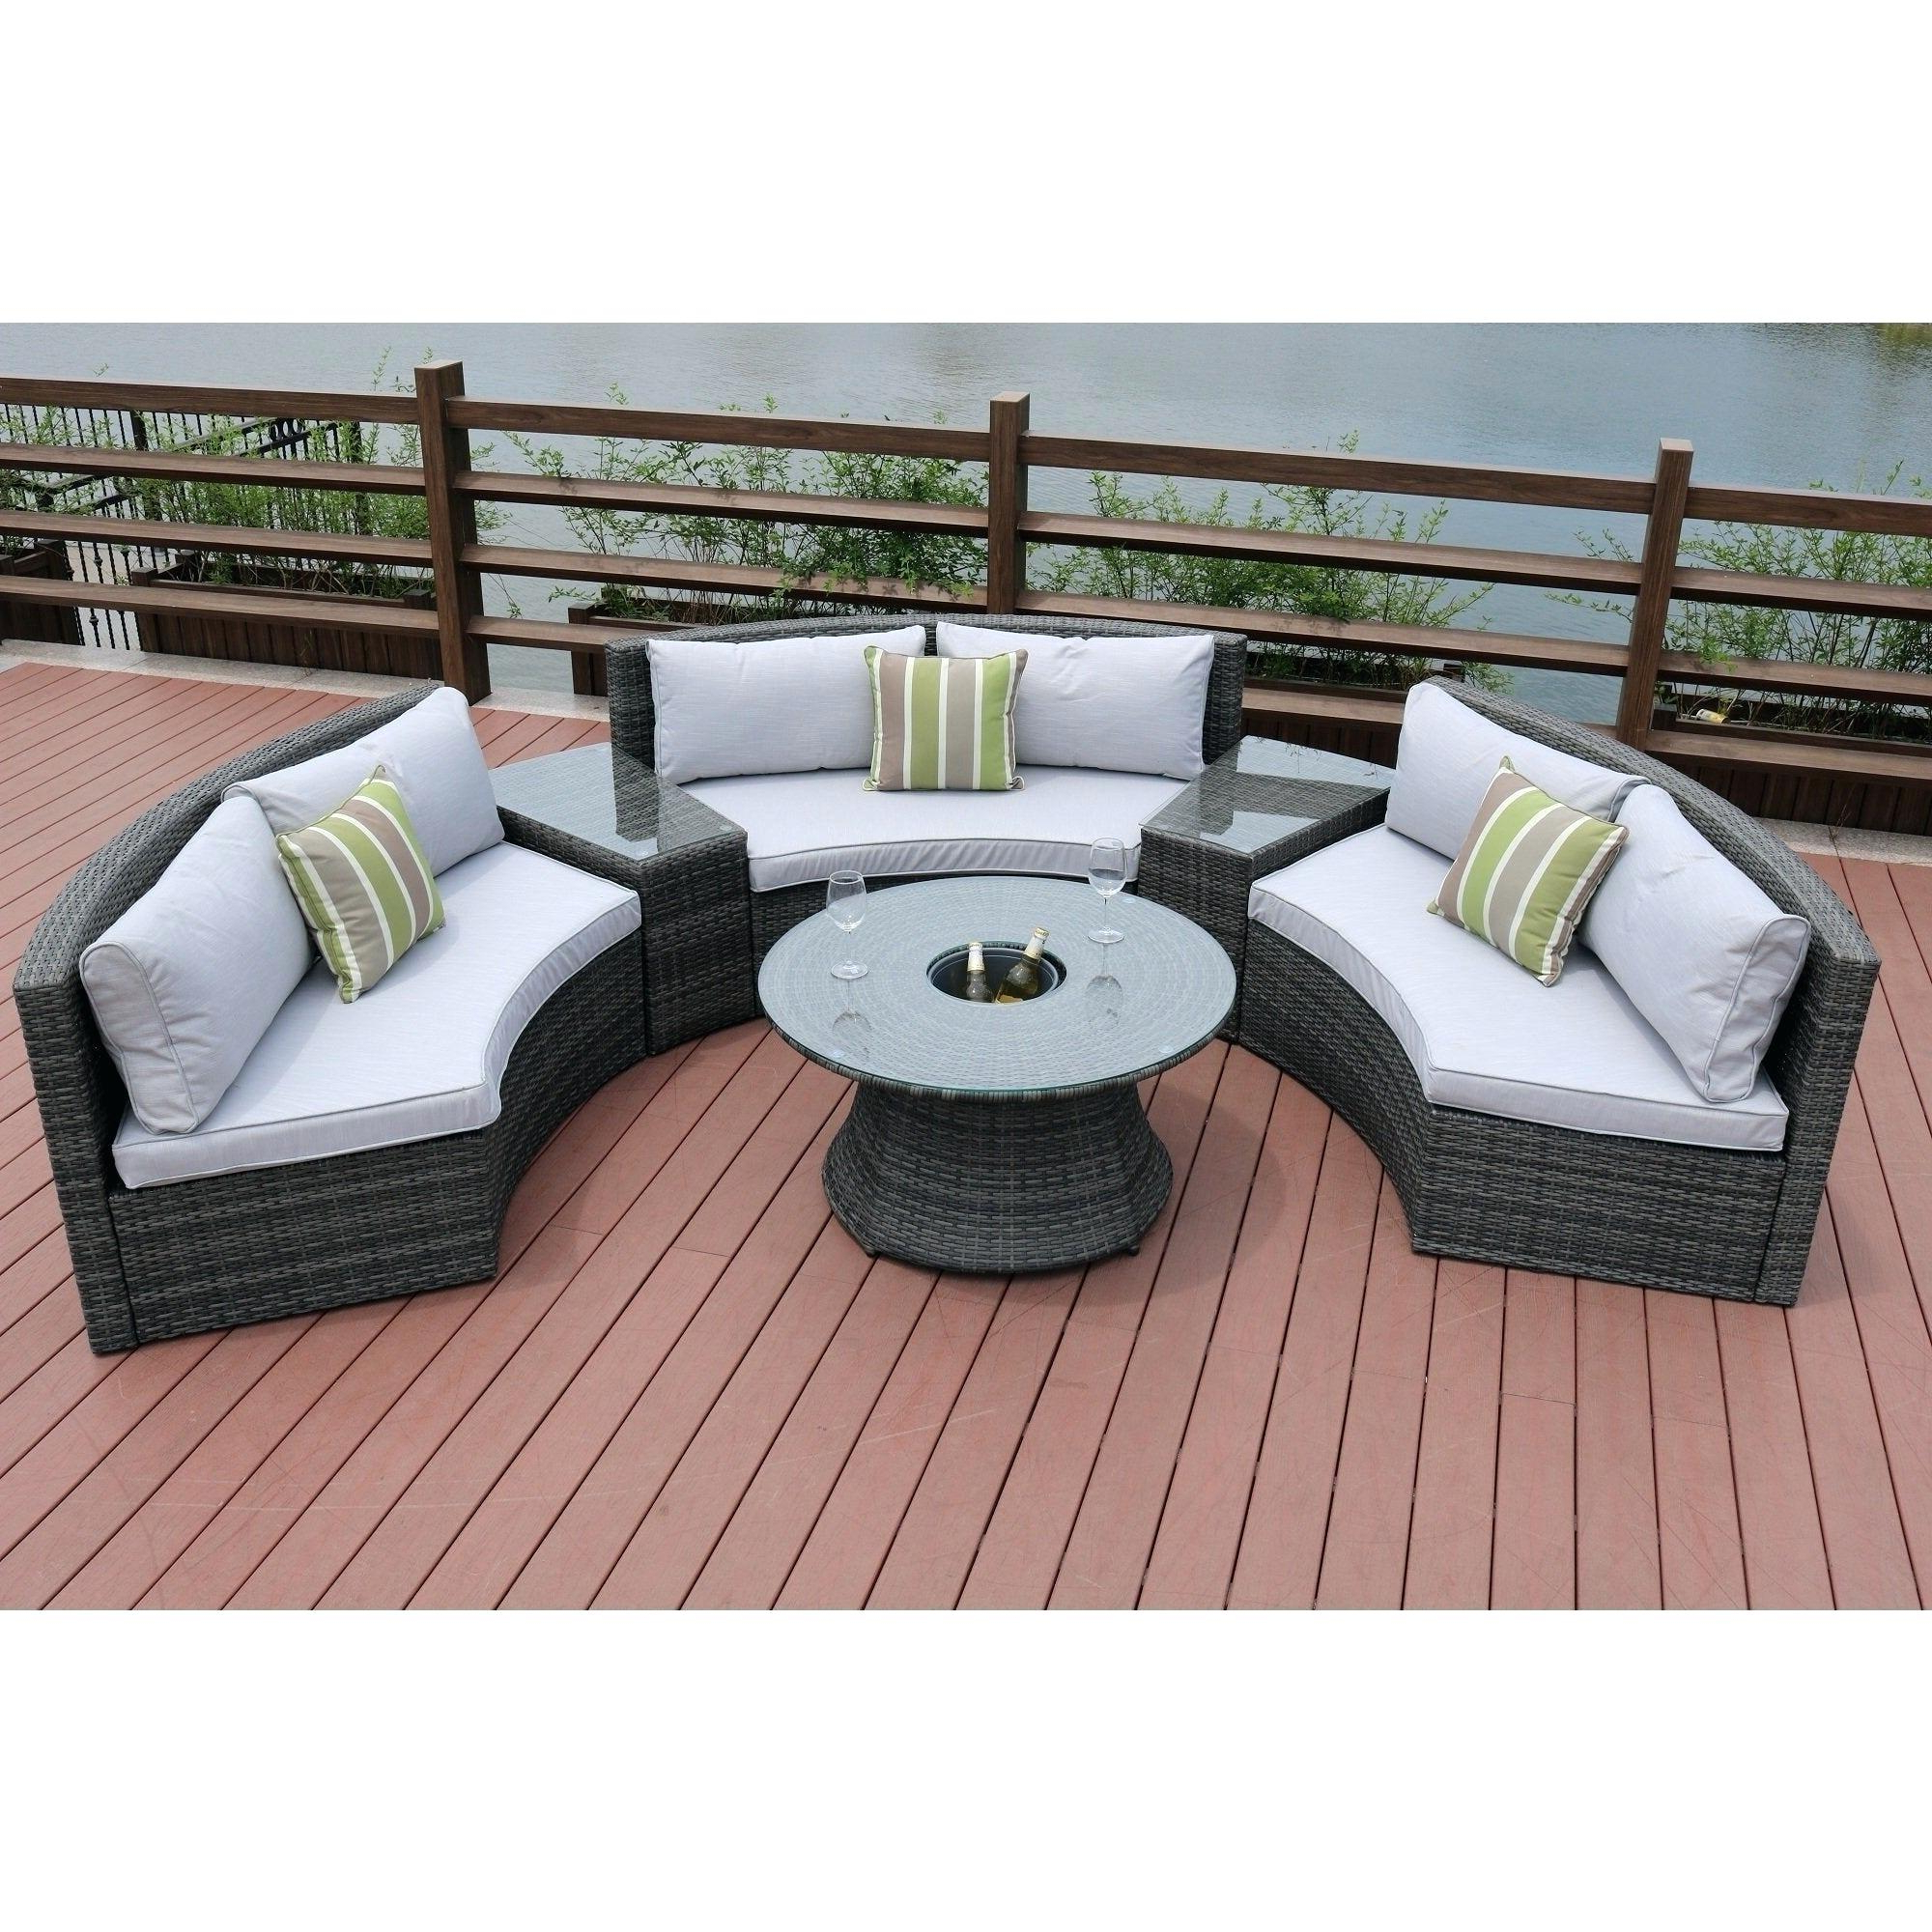 Ostrowski Outdoor Wicker Patio Sectional With Cushions Inside Favorite Ostrowski Patio Sectionals With Cushions (View 2 of 25)